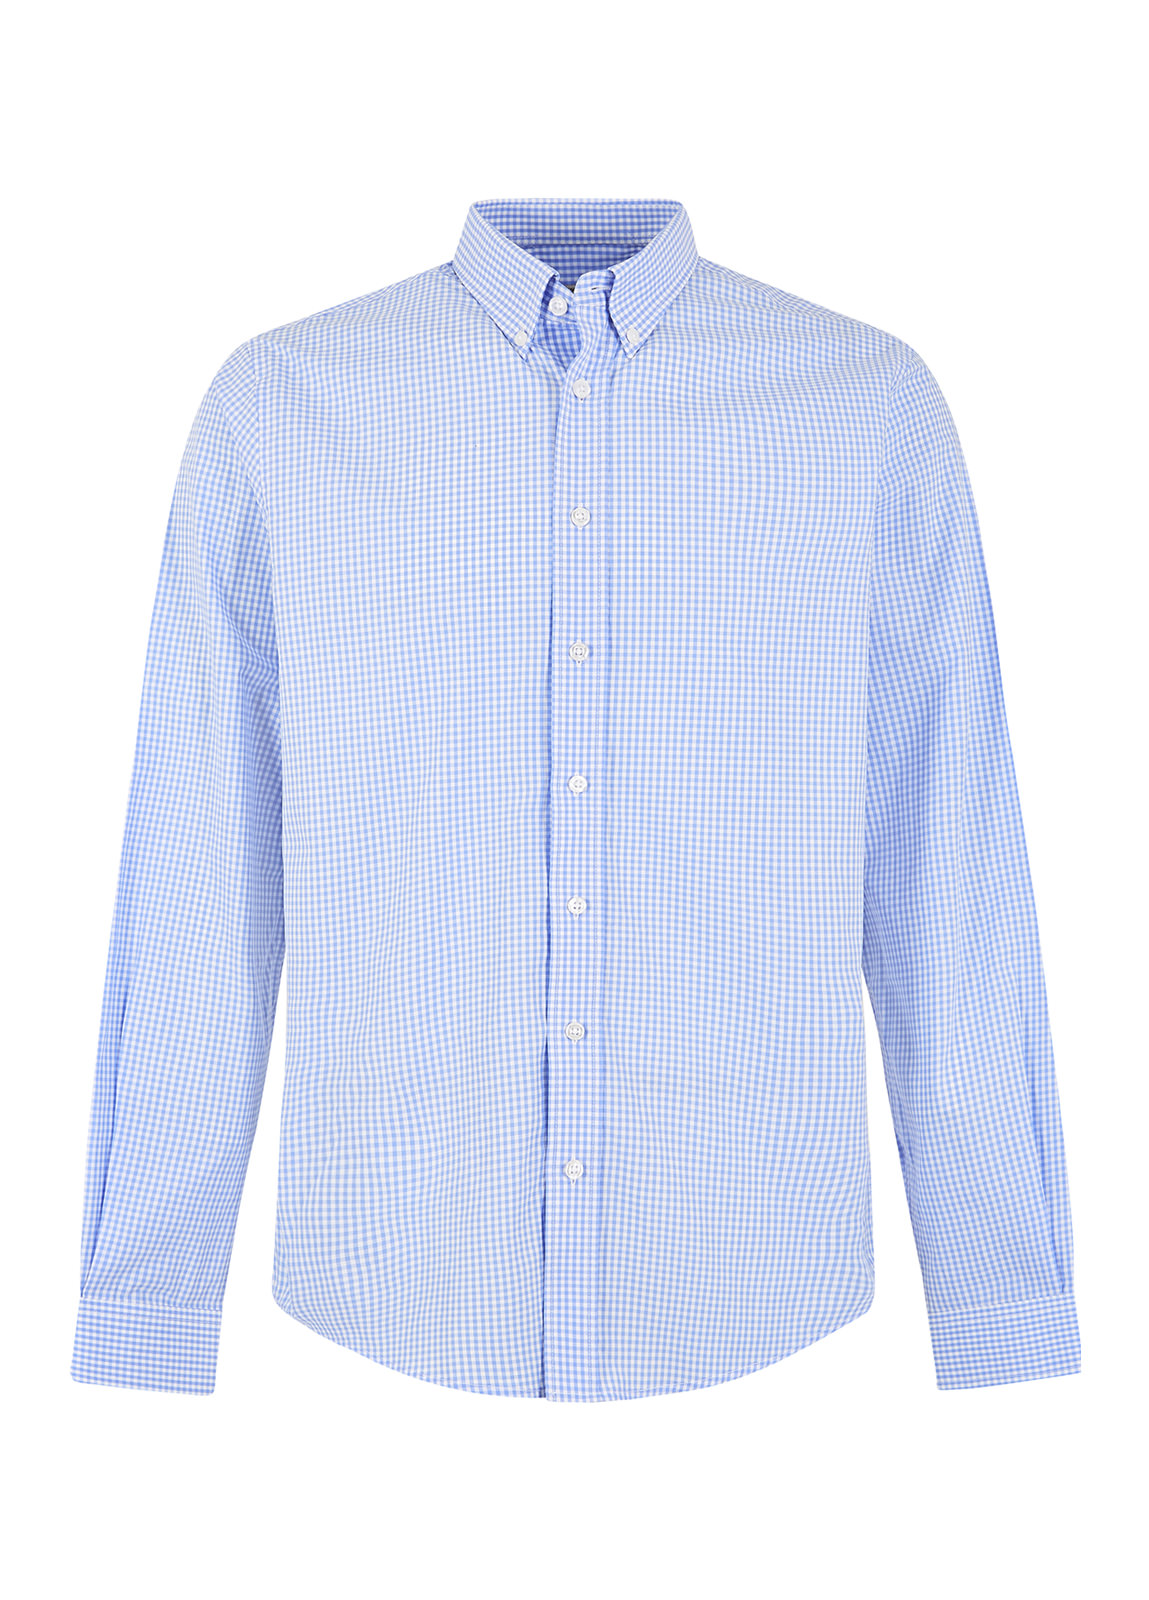 Dubarry_Longwood Shirt - Blue_Image_2